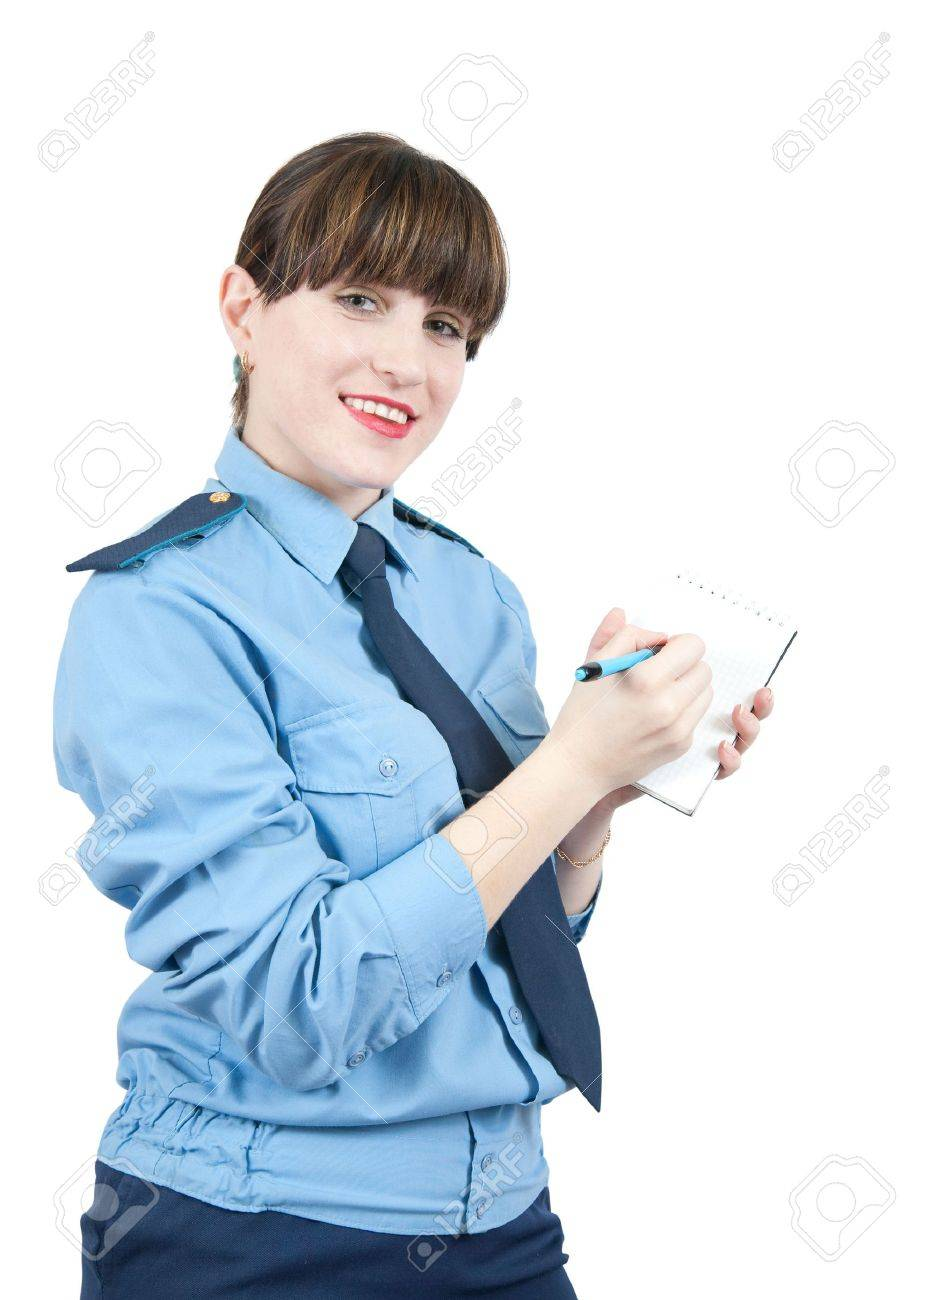 woman in uniform writing something on a notebook over white Stock Photo - 6346498